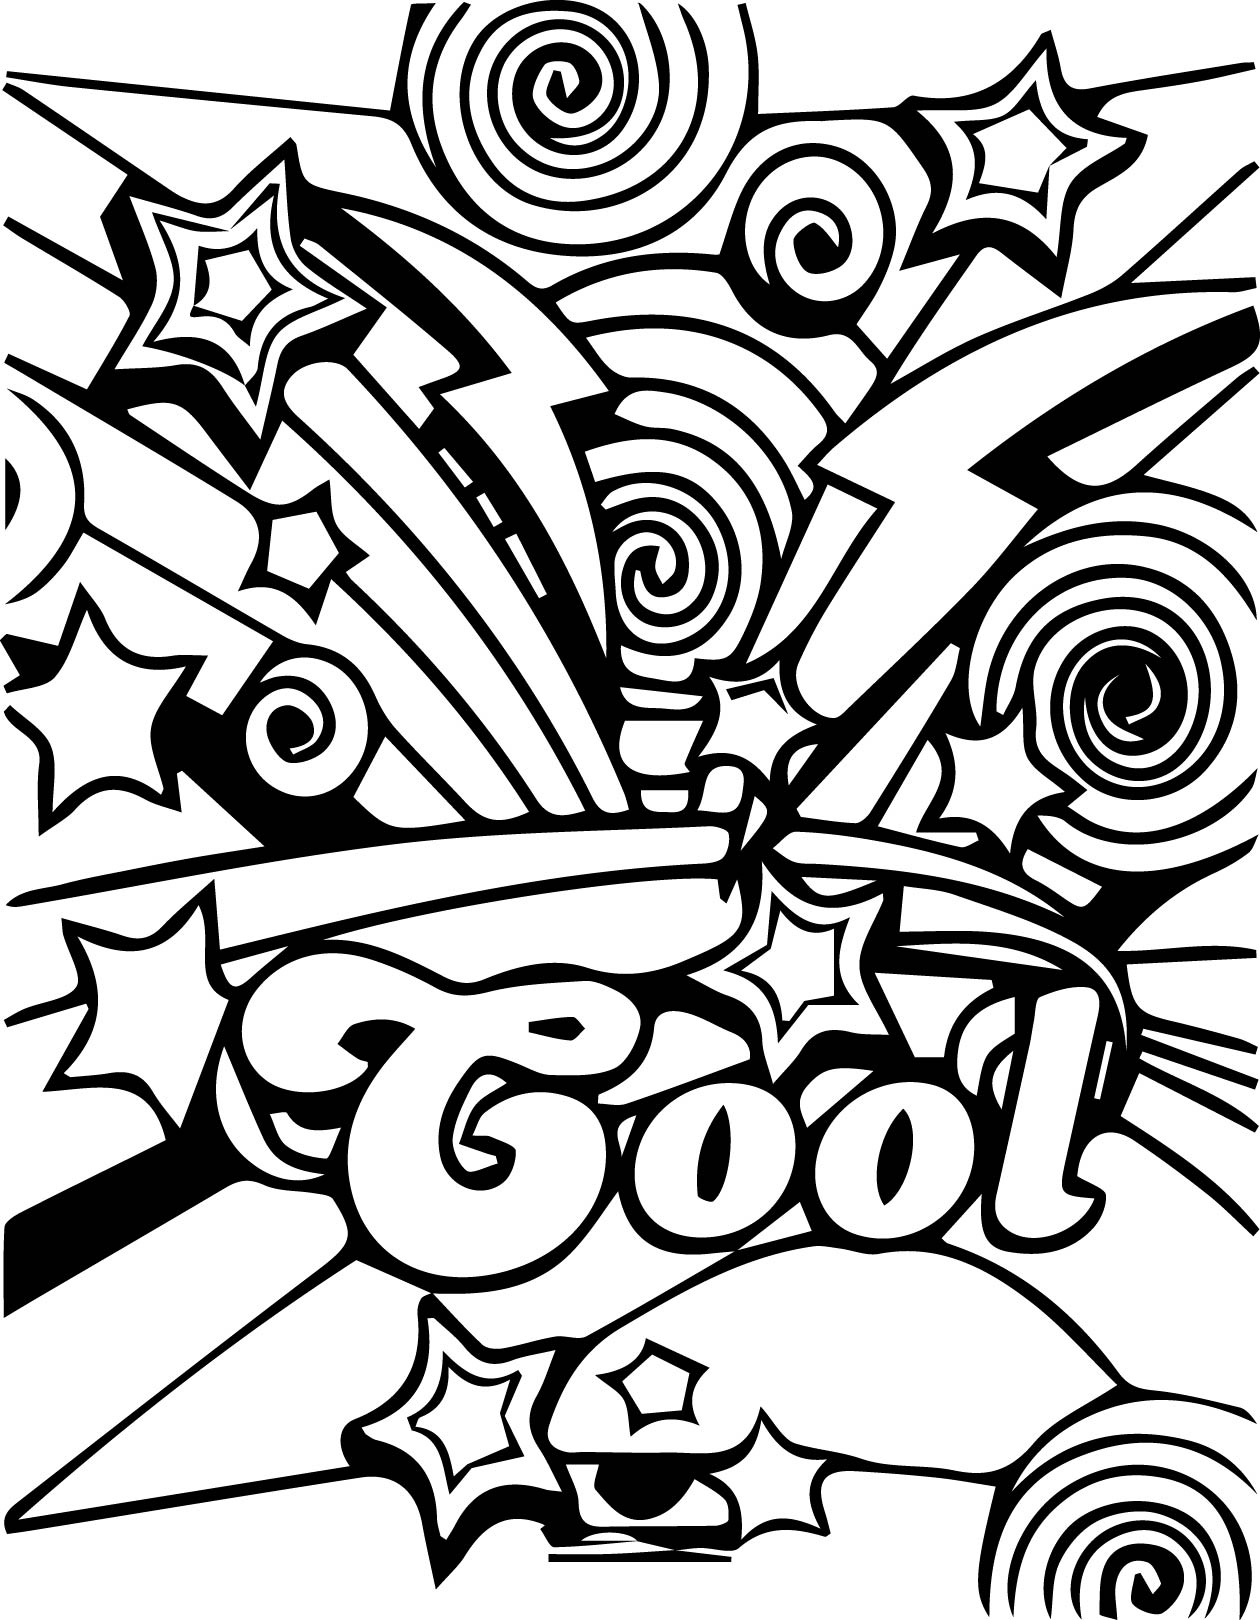 1260x1620 Awesome Coloring Pages For Adults